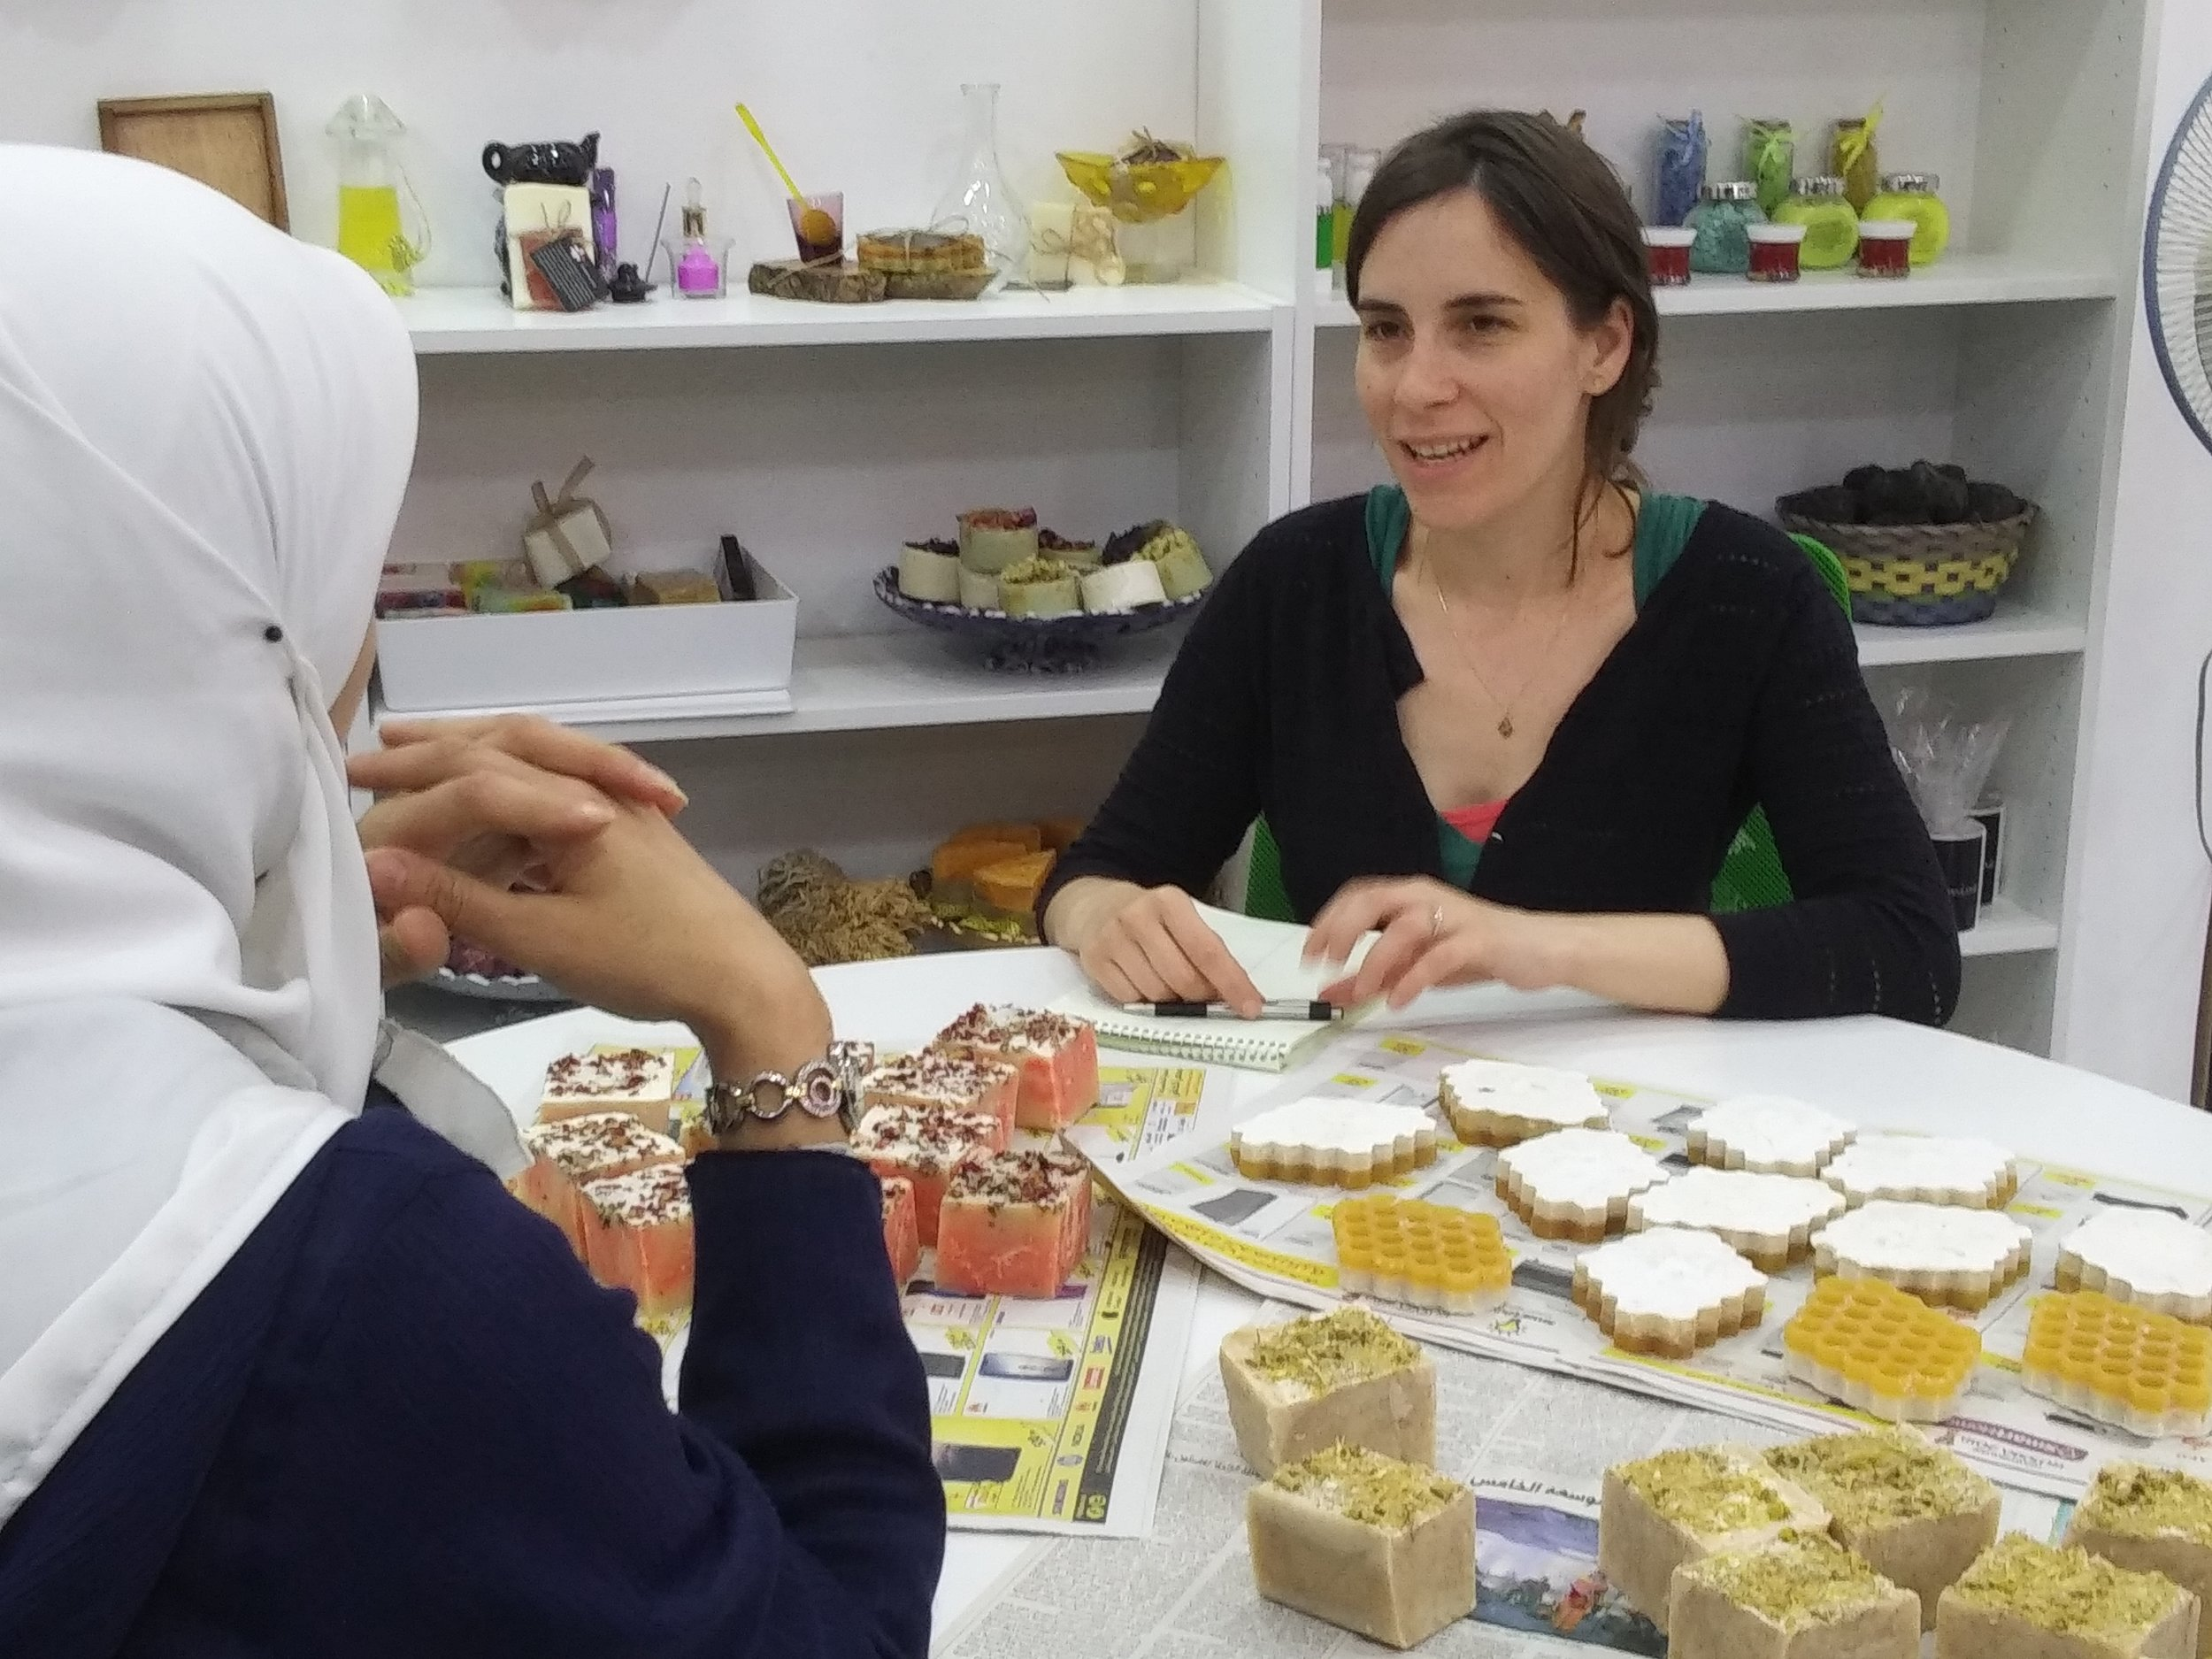 Izza Leghtas (right) interviewing Syrian handicrafts entrepreneur in Amman, Jordan.